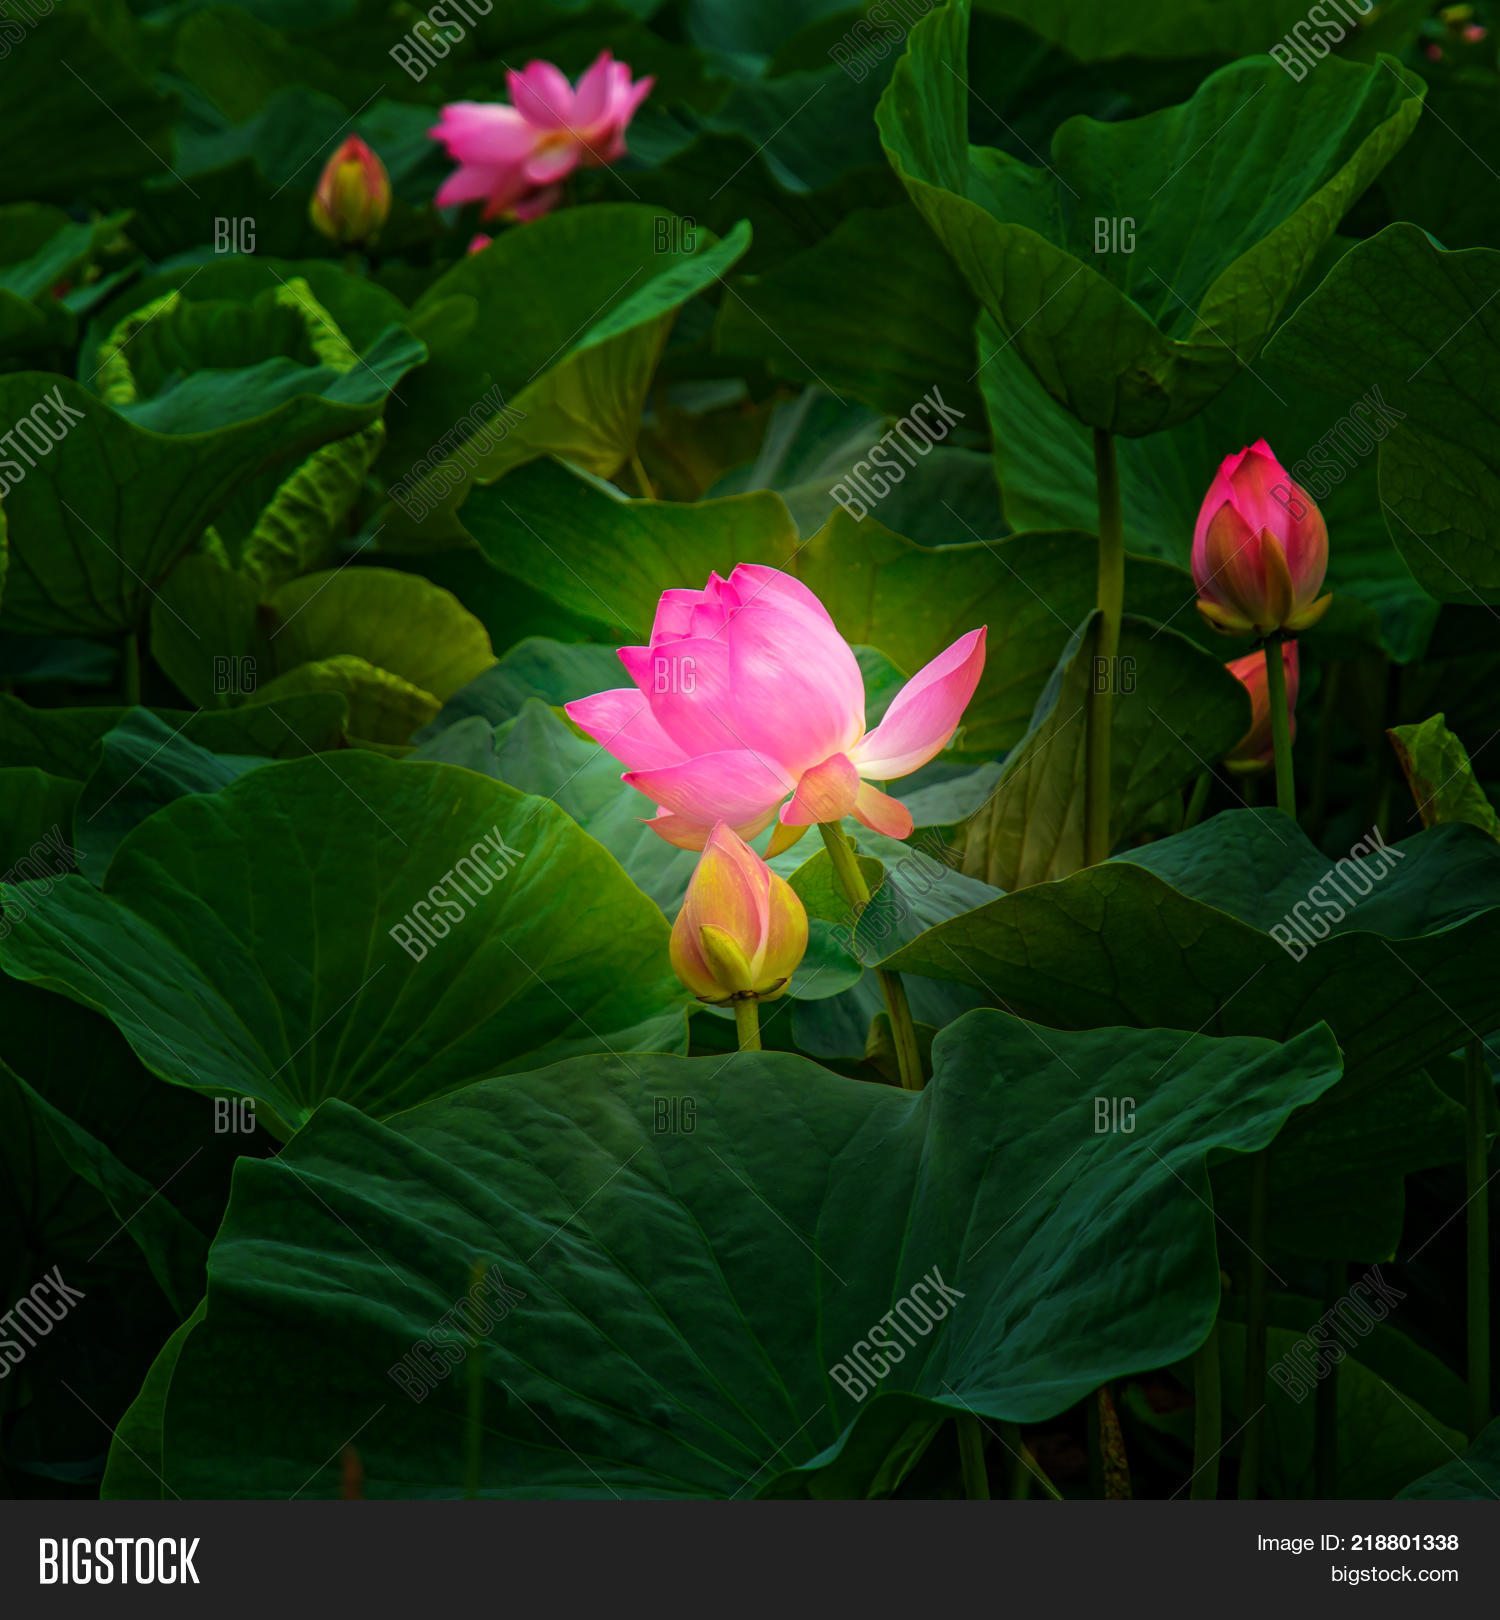 Large lotus flowers image photo free trial bigstock large lotus flowers bright pink buds of lotus flower floating in the lake close mightylinksfo